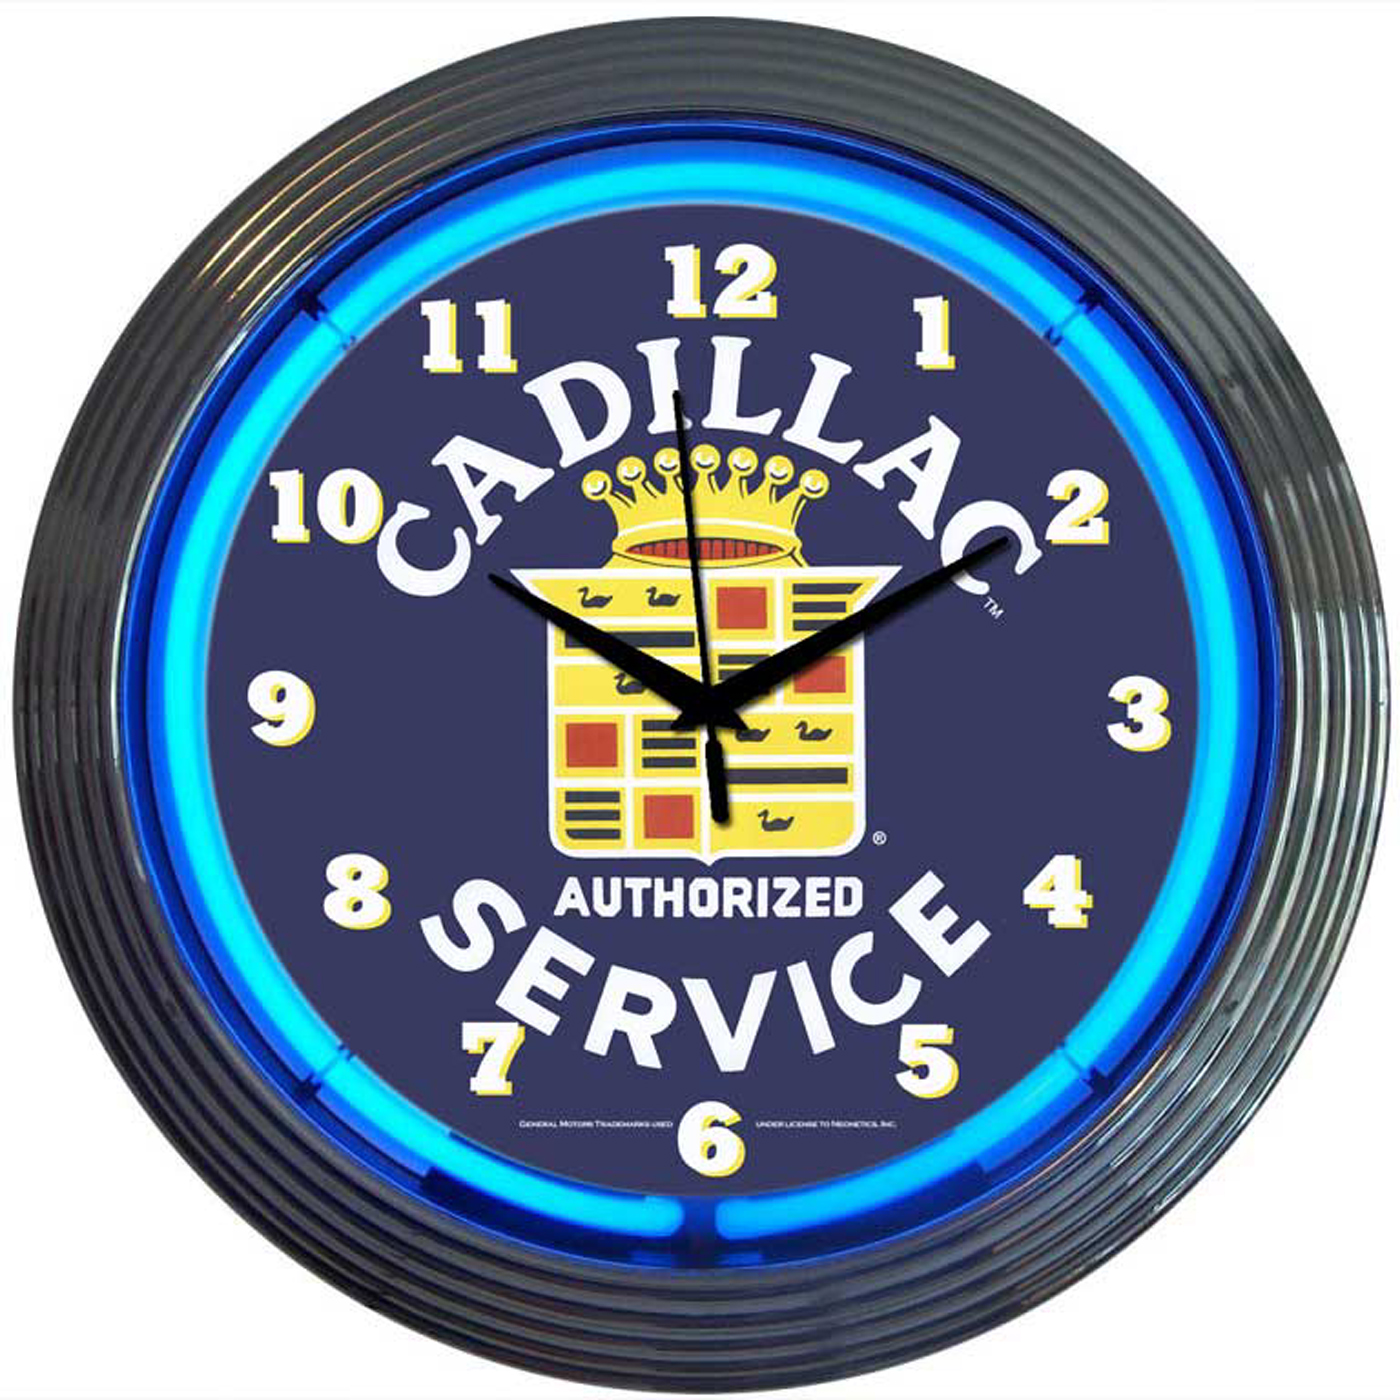 Cadillac Service Neon Clock by Neonetics in Wall Clocks